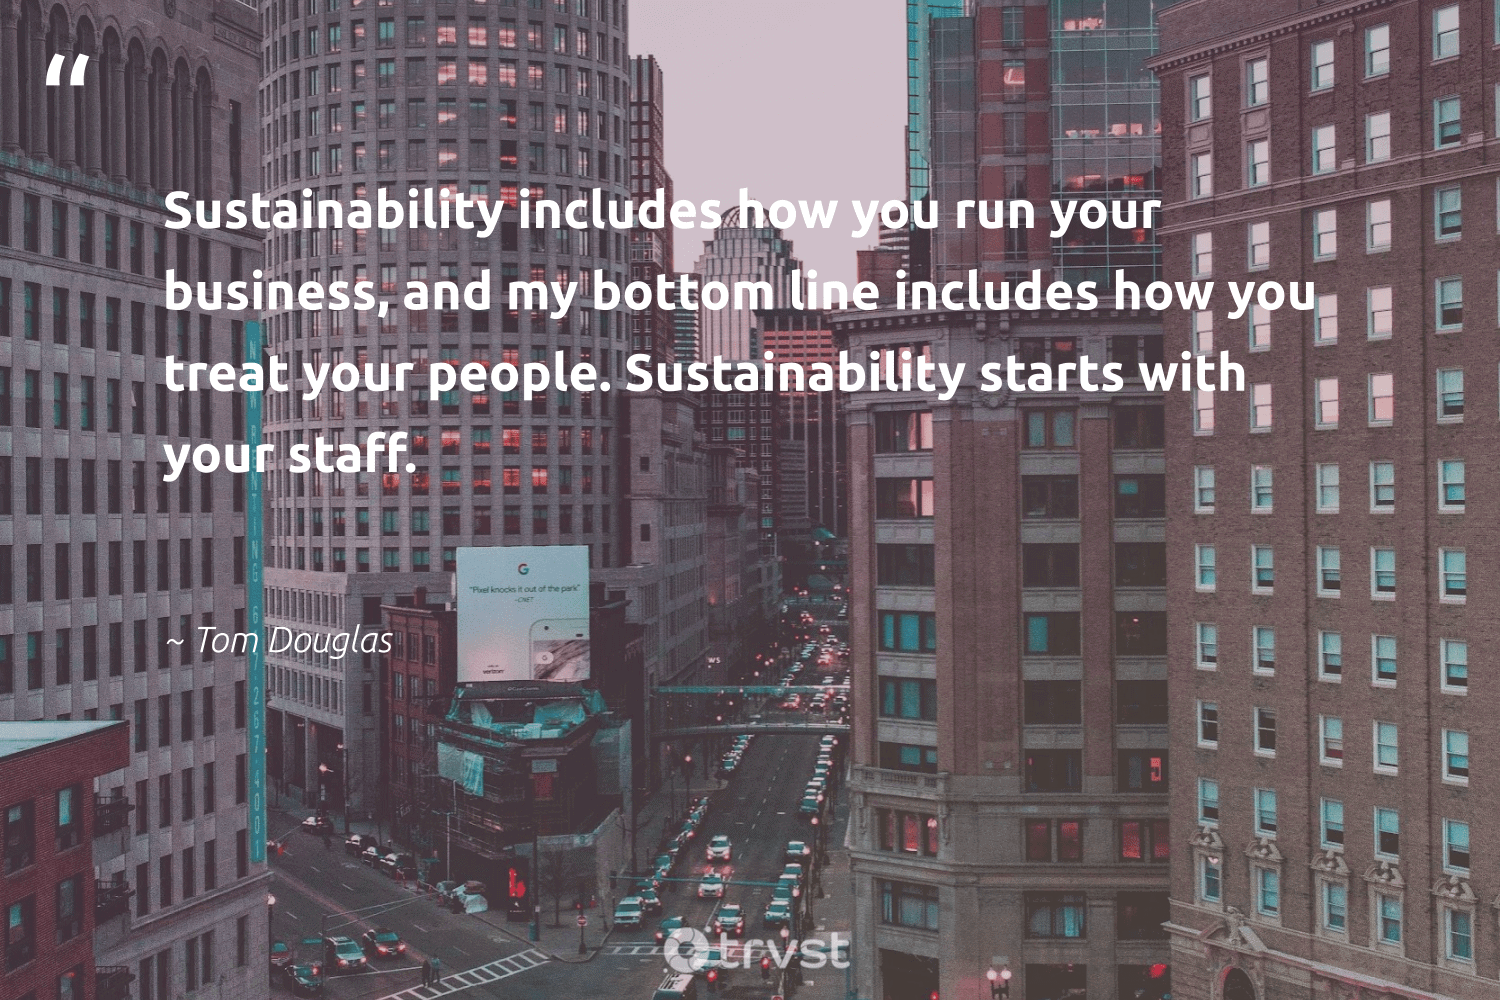 """""""Sustainability includes how you run your business, and my bottom line includes how you treat your people. Sustainability starts with your staff.""""  - Tom Douglas #trvst #quotes #sustainability #sustainableliving #socialchange #sustainable #bethechange #ecofriendly #dogood #gogreen #planetearthfirst #betterplanet"""